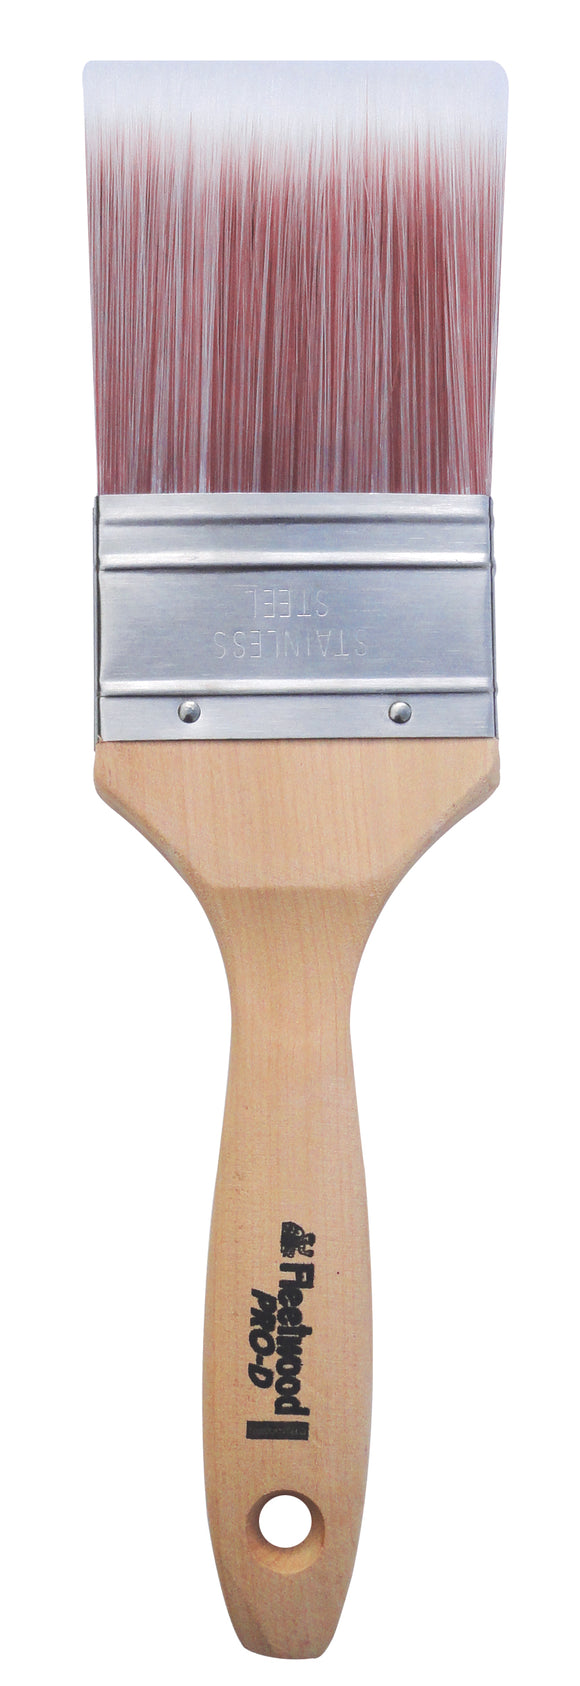 Fleetwood Pro D Brush 2.5 inch - T.O'Higgins Homevalue - Galway